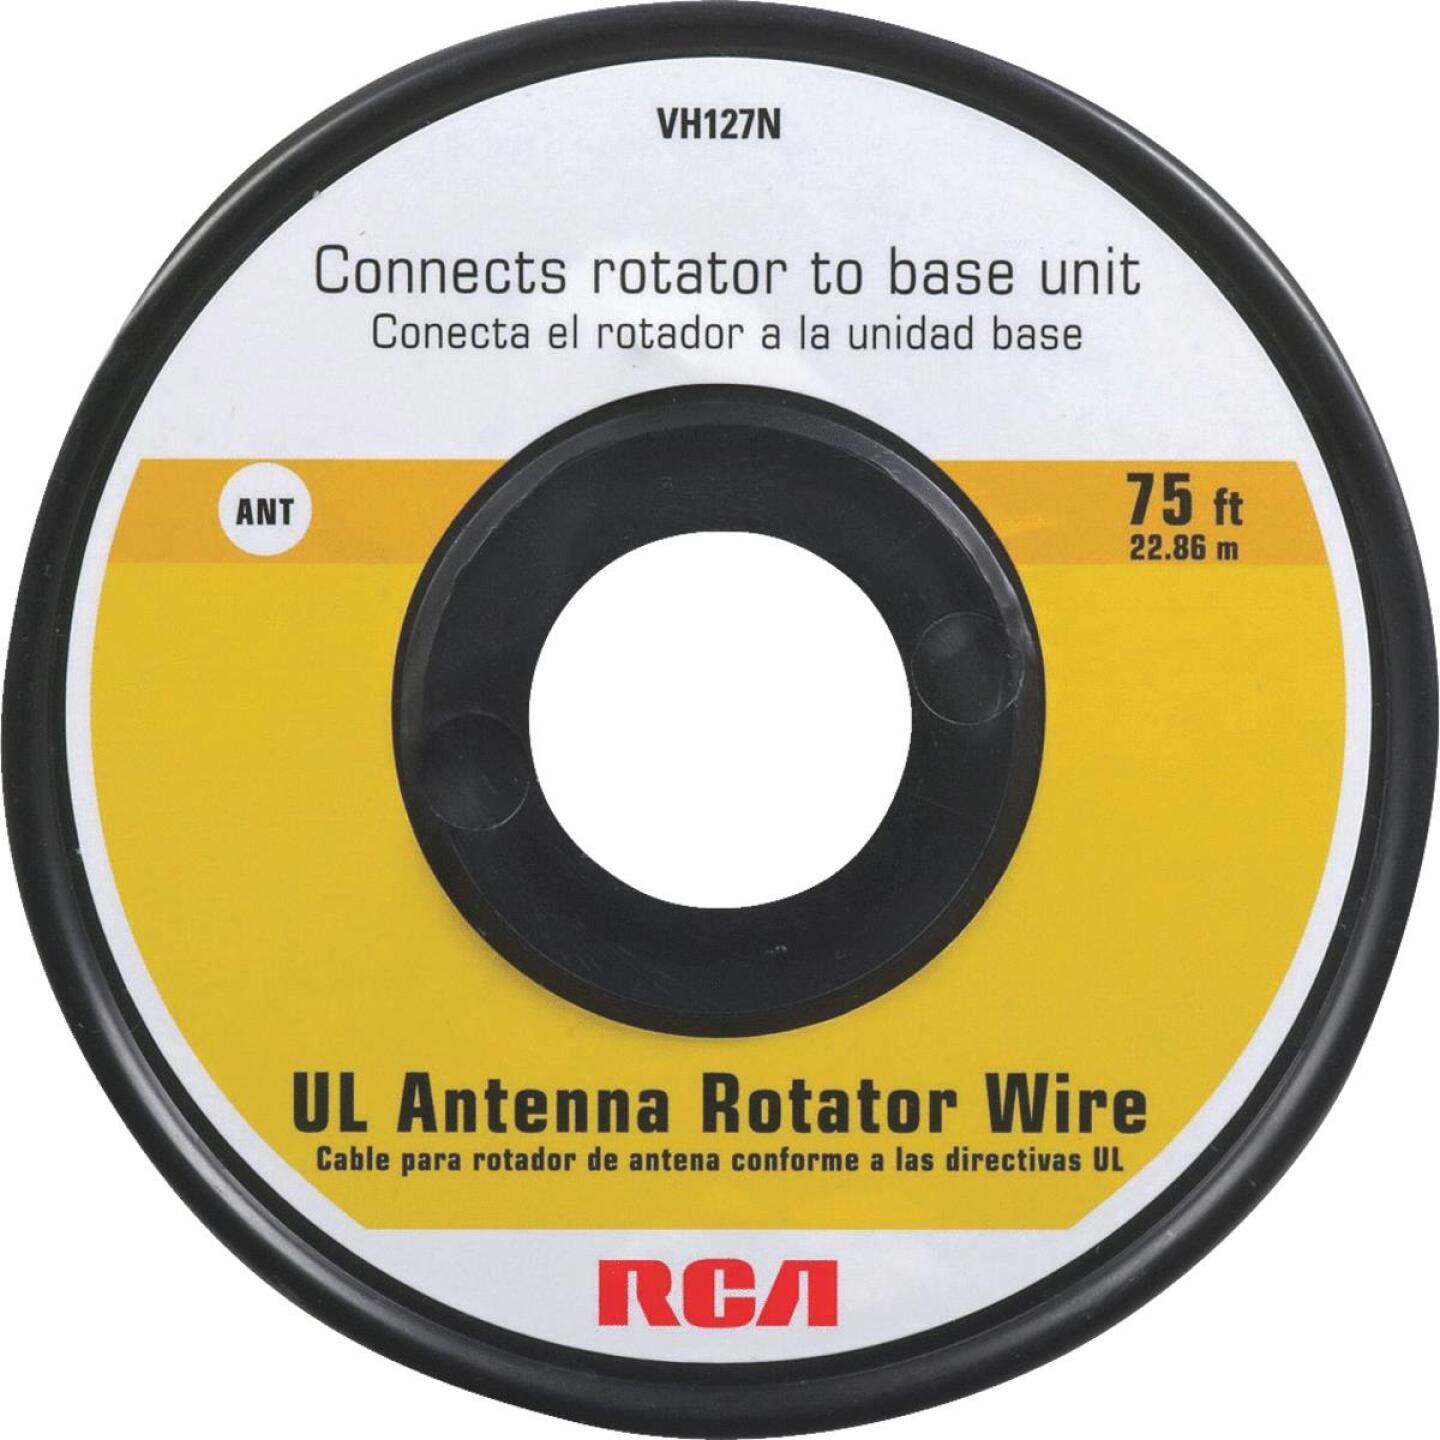 RCA 75 Ft. Outdoor Antenna Rotator Wire Image 1